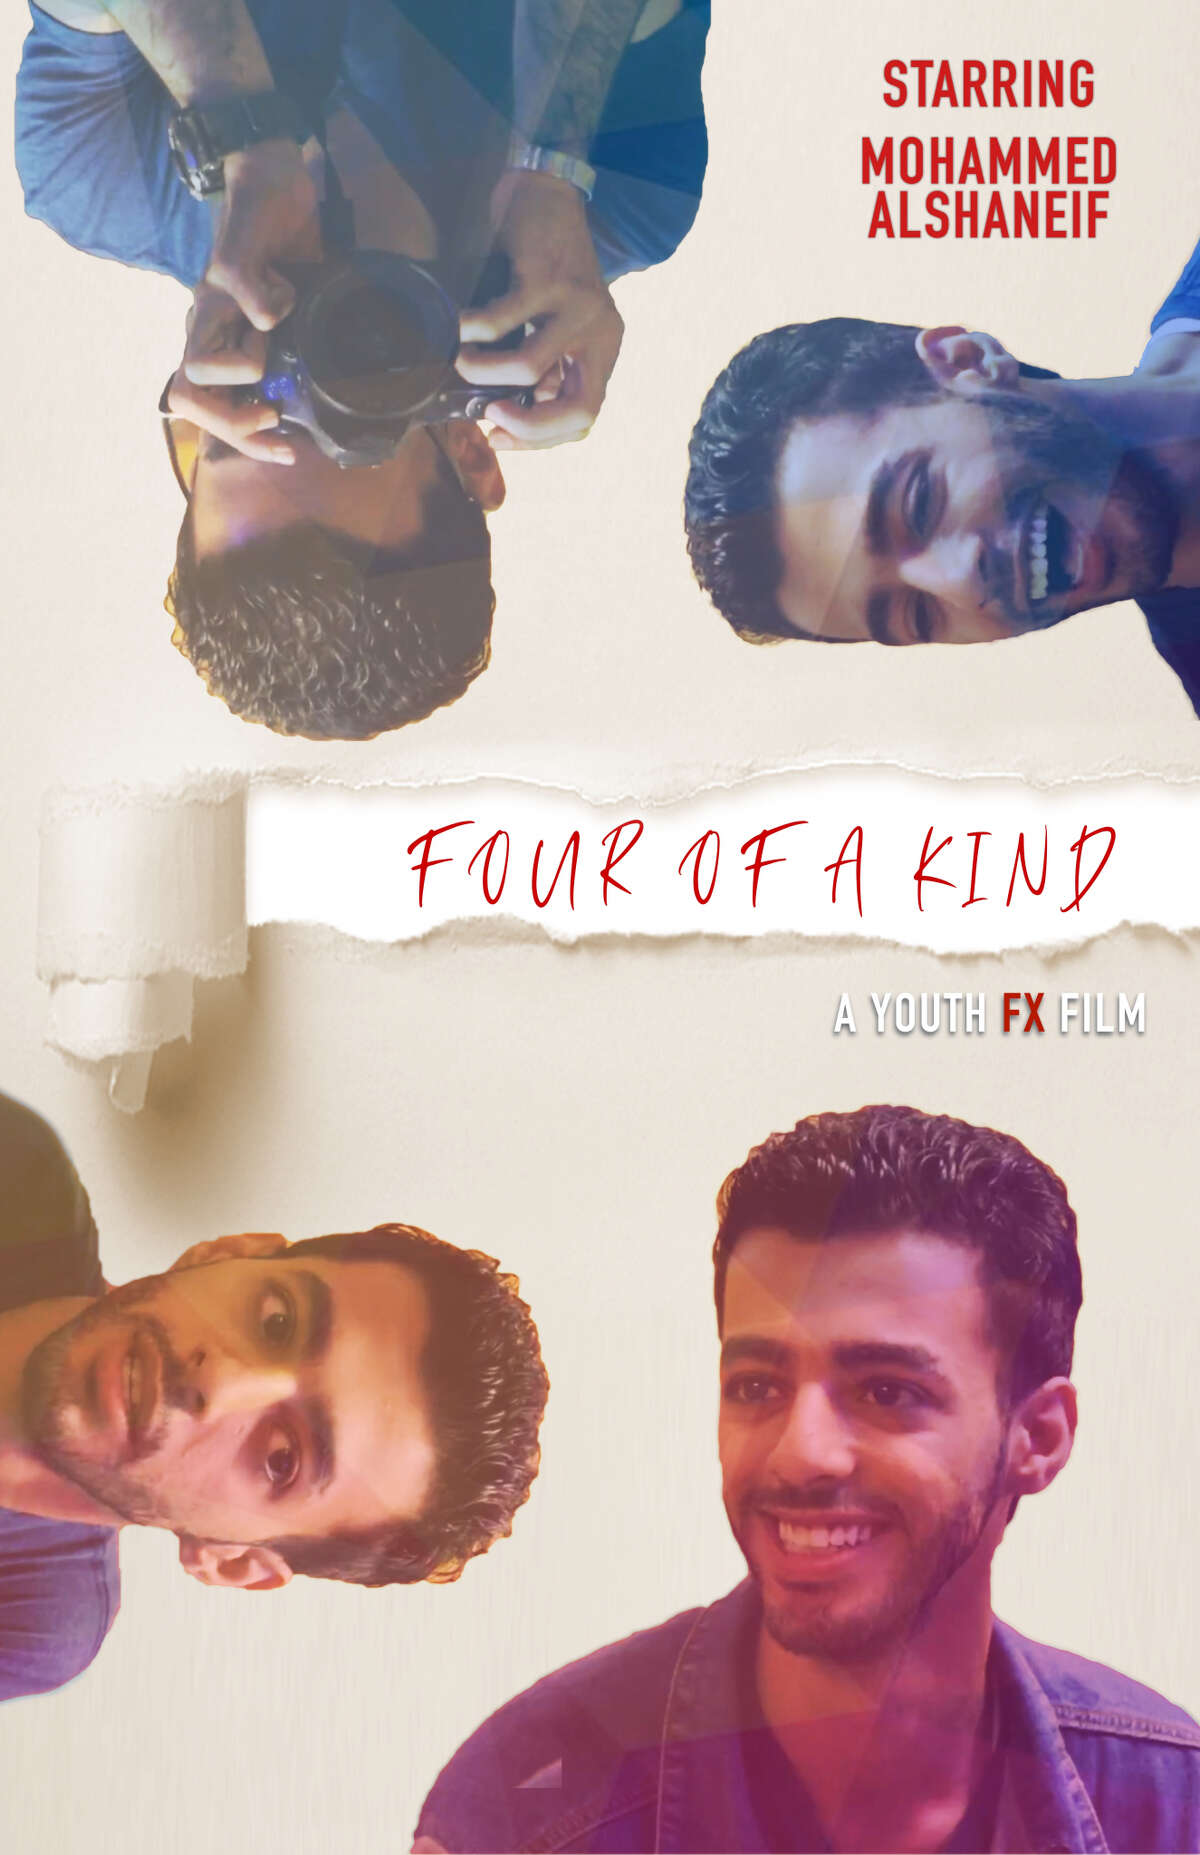 Mohammed Alshaneif, who fled war in Syria and was resettled as a refugee in Albany, is starring in his first film in Youth FX's annual showcase this week.